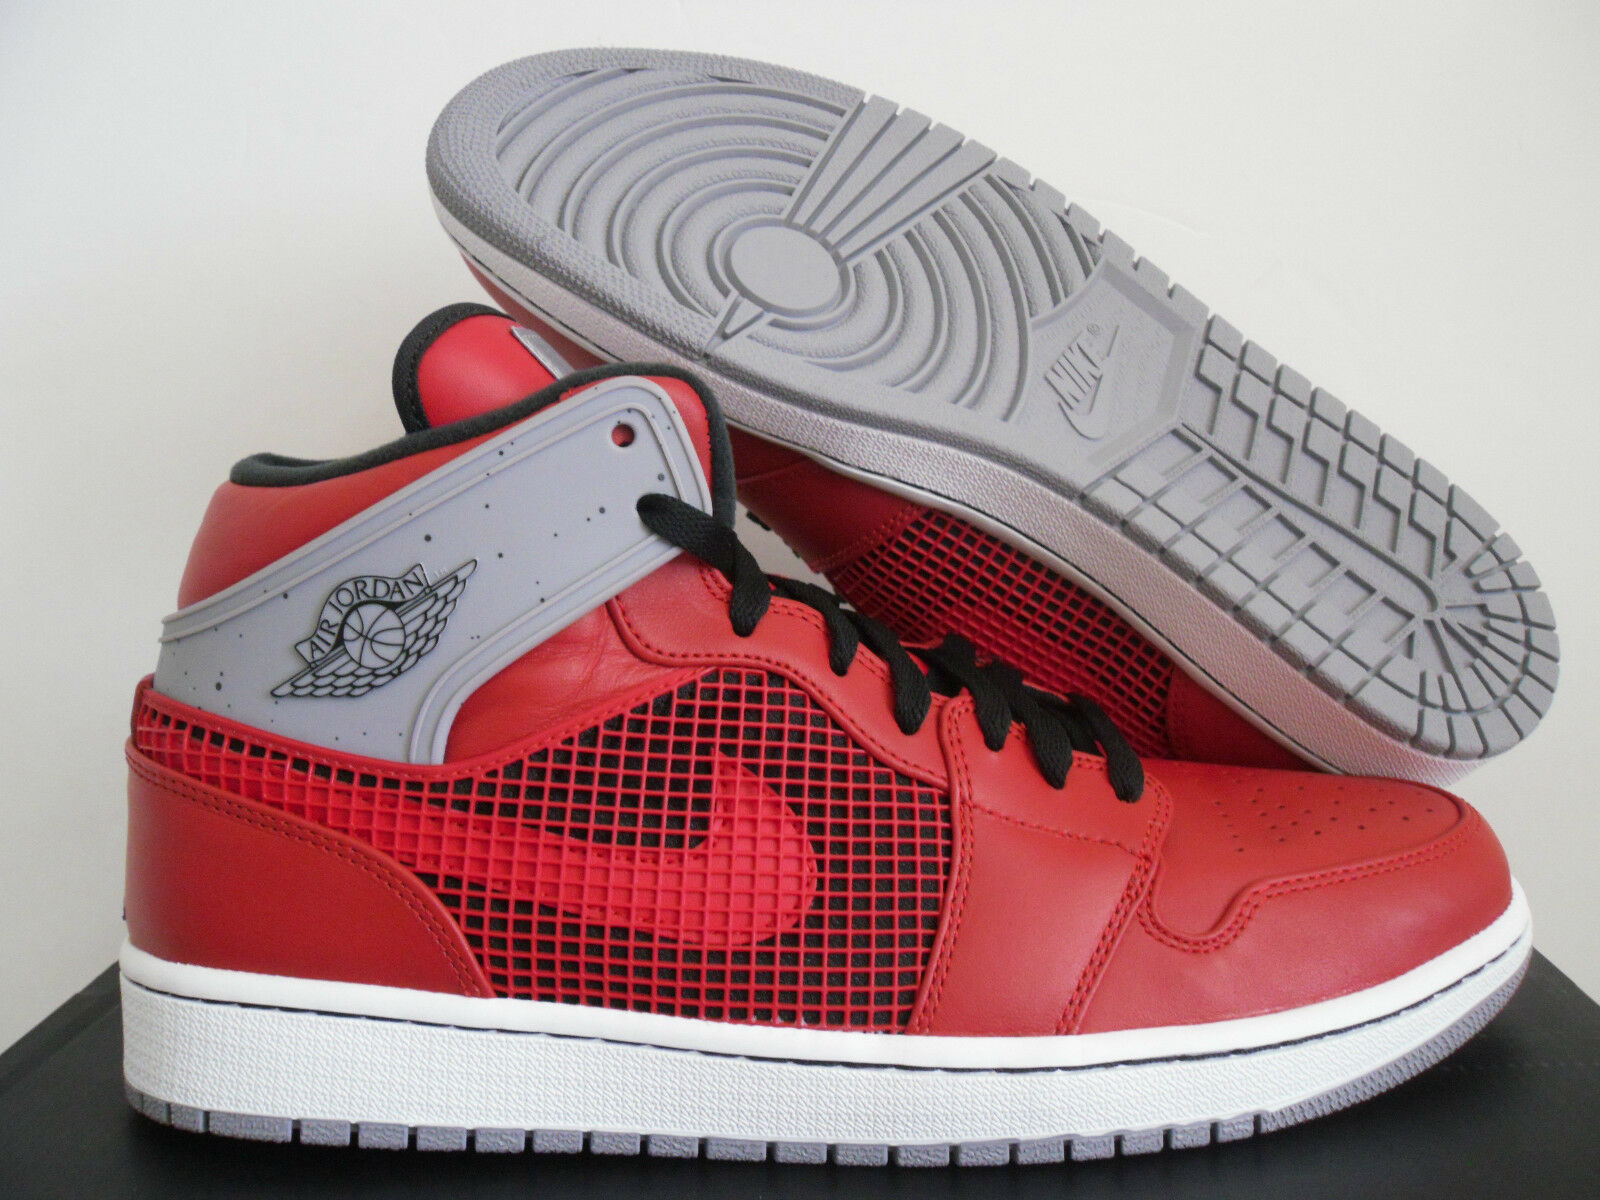 NIKE AIR JORDAN 1 RETRO 89 QS FIRE Rouge-CEMENT Gris-Blanc SZ 13 [599873-602]